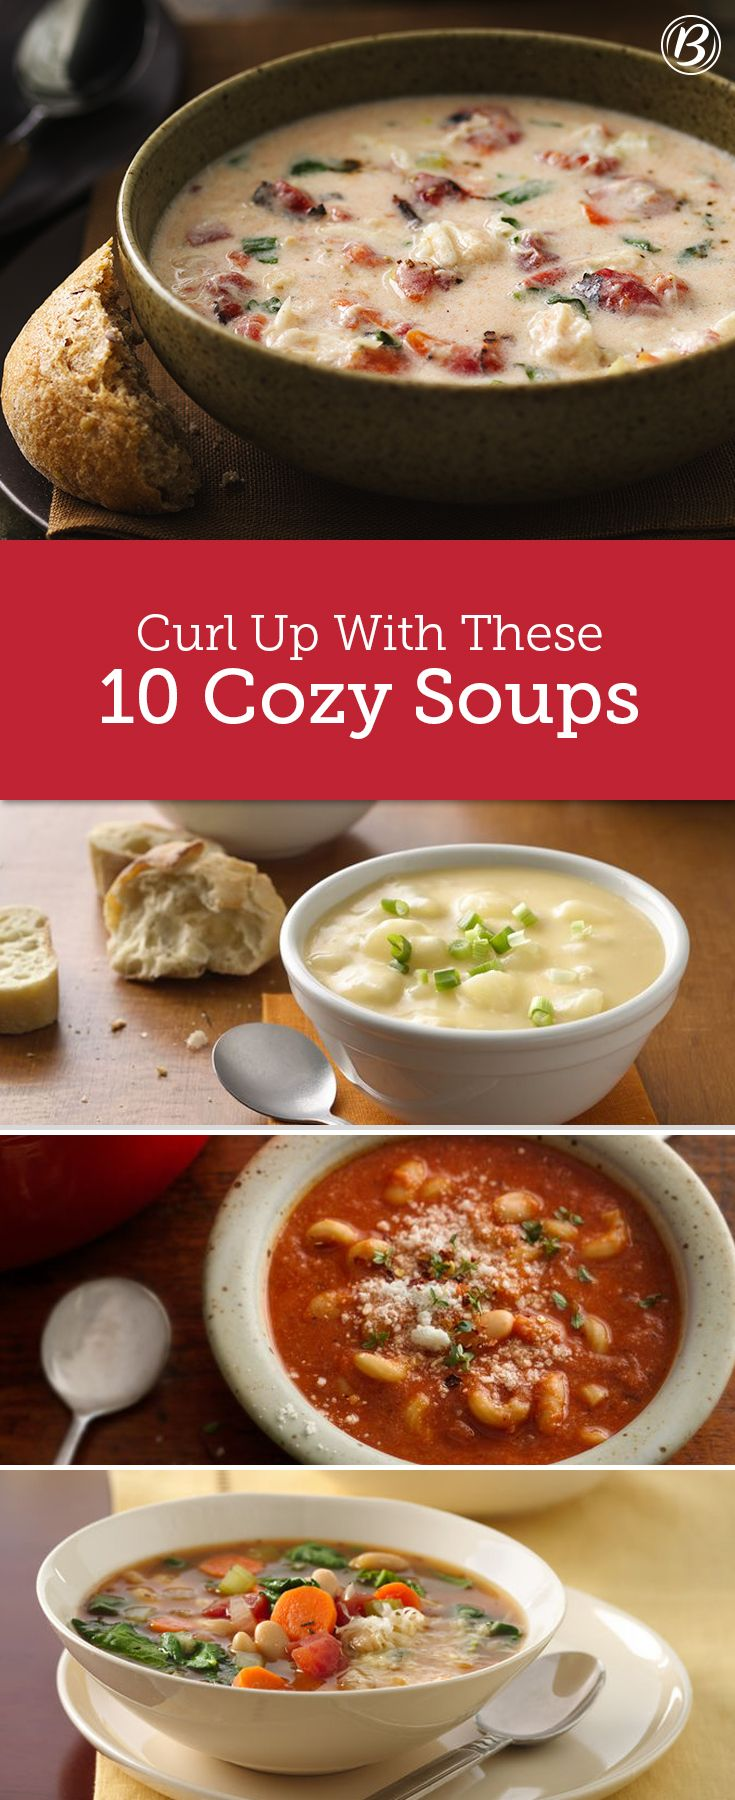 It's the perfect time of year for a cozy soup and these recipes are the absolute best! From slow-cooker recipes to must-try chilis, you'll want to curl up with a bowl for dinner every night of the week.